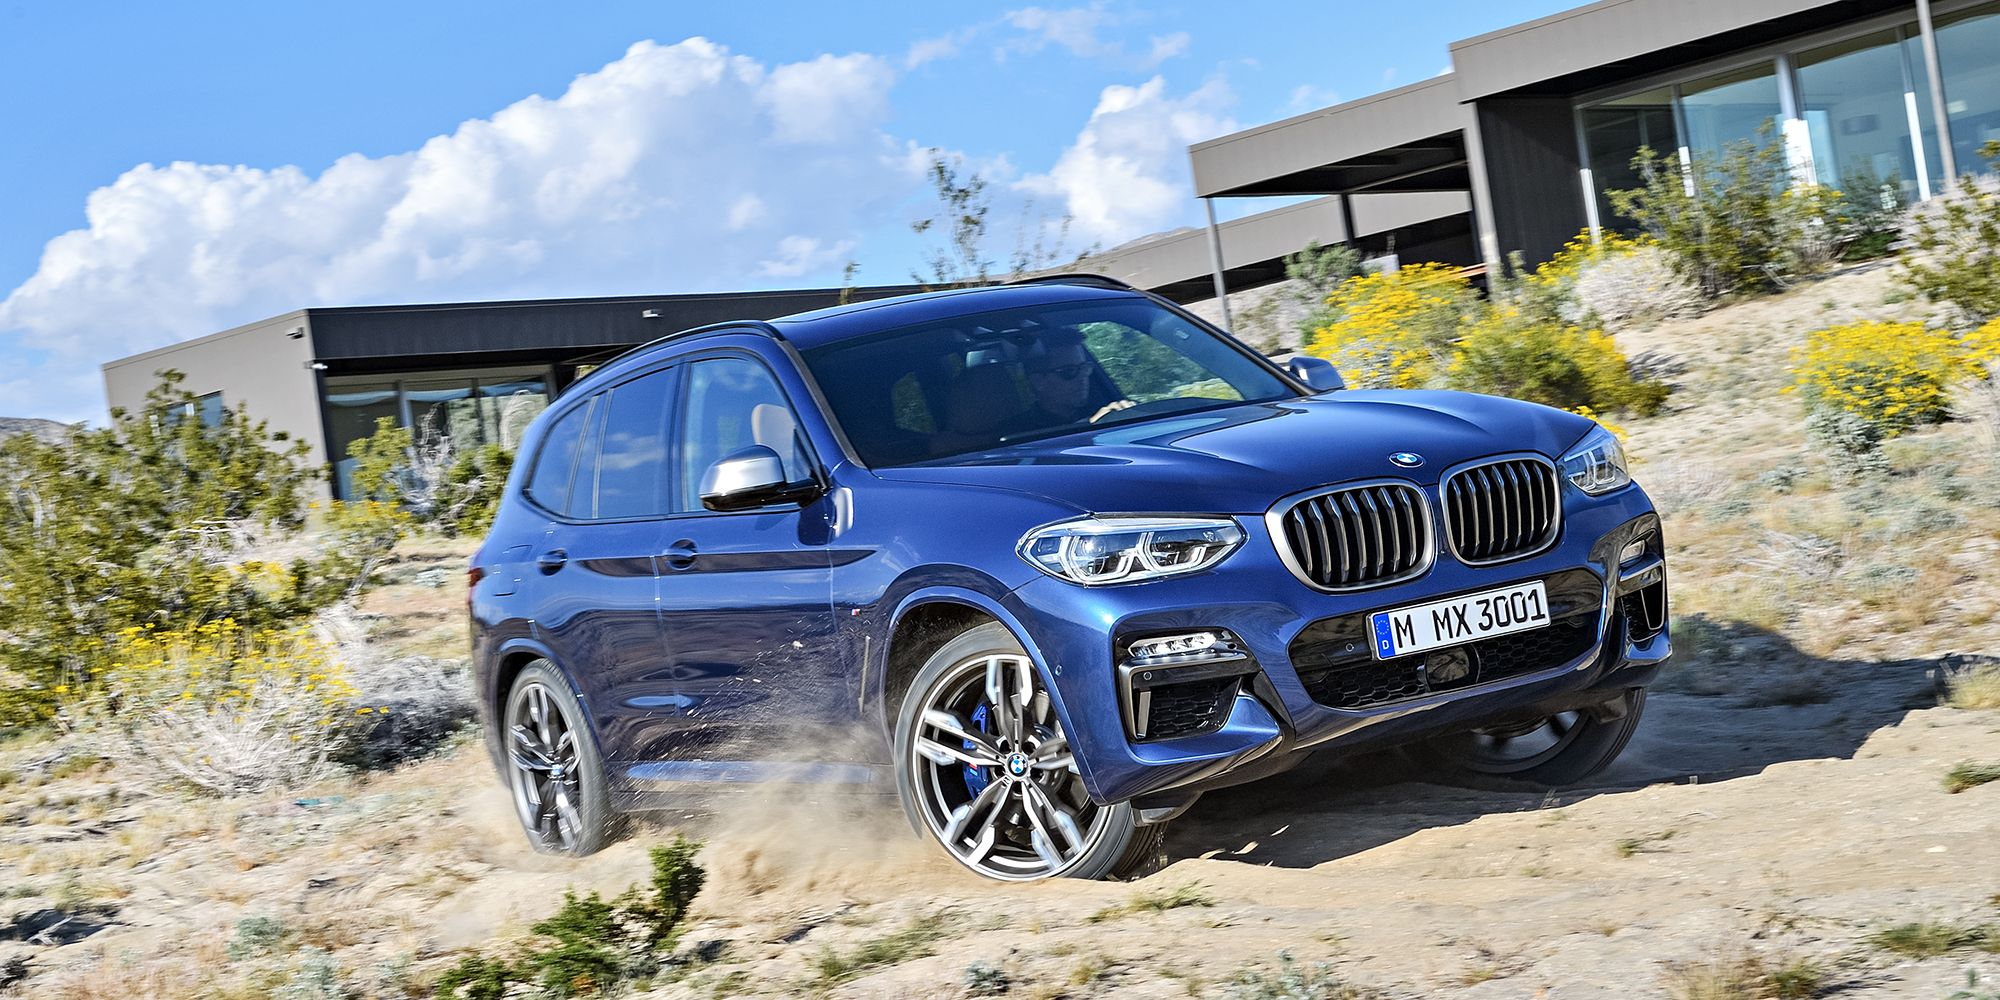 2018 Bmw X3 M40i Packs 355 Hp And Launch Control